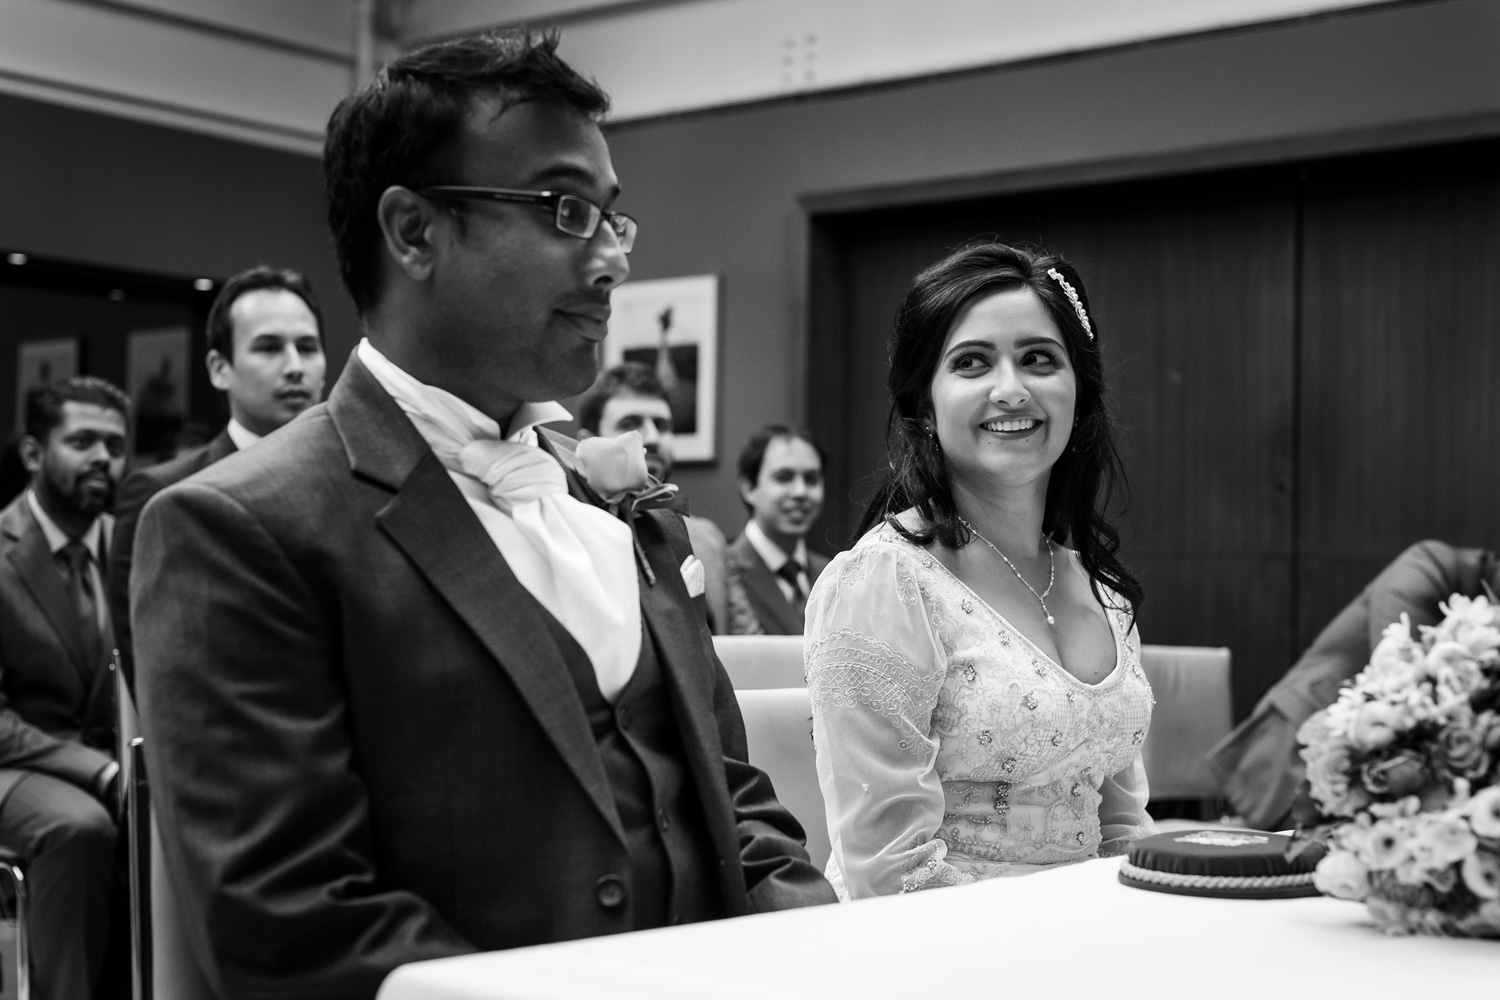 Bluebird Restaurant, London, wedding photography – Reshmi & Sarit